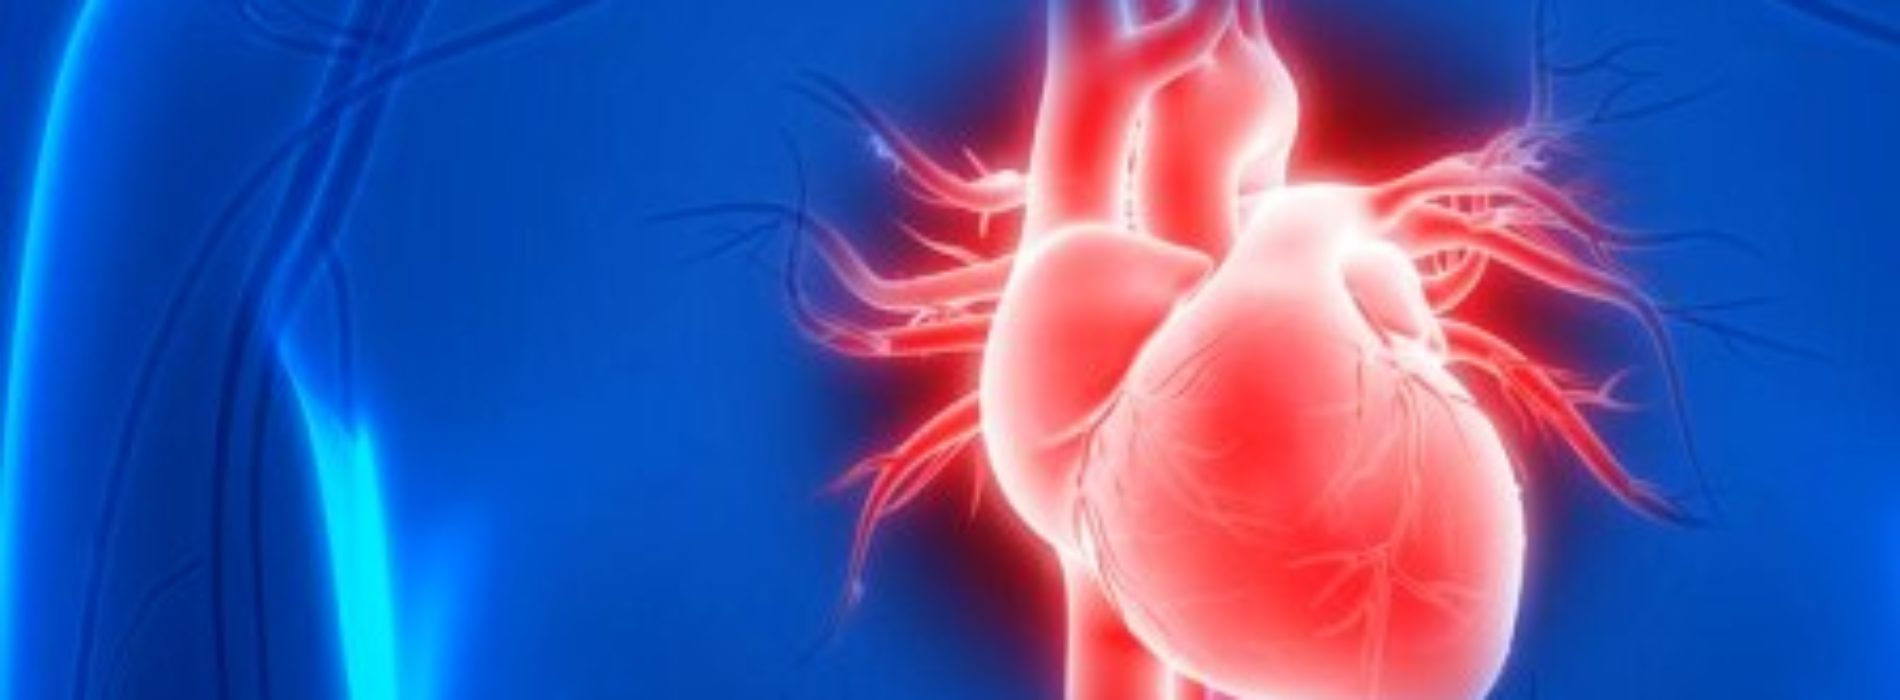 Sex and heart disease: Can your heart take it?